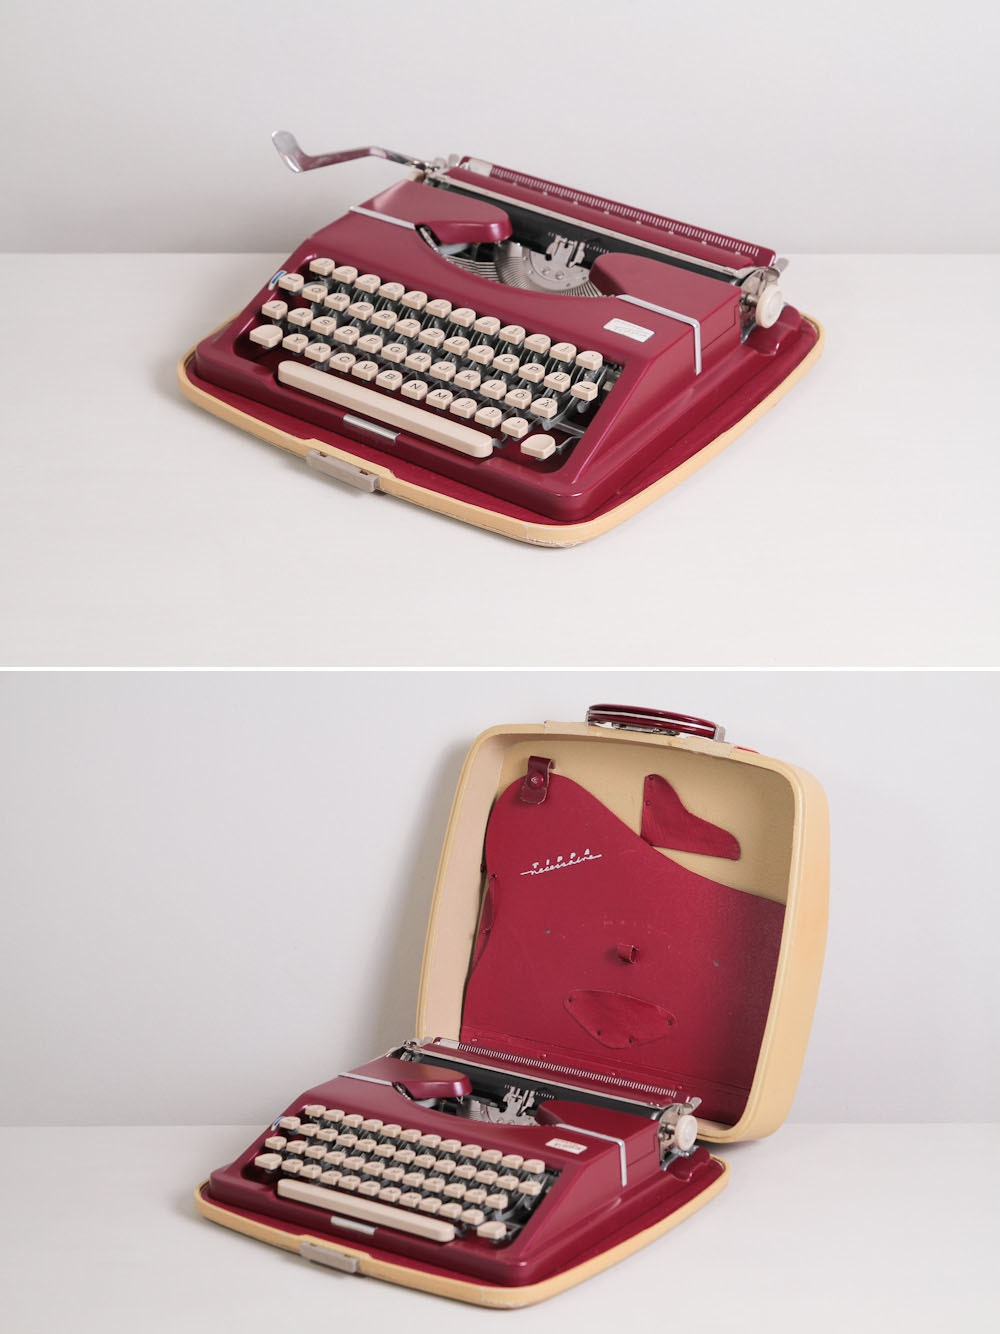 Late 1950s Adler Tippa Typewriter. Excellent fully working conditon. Dark red. German vintage typewriter. With Case. Mid century modern. - TypewriterWshop